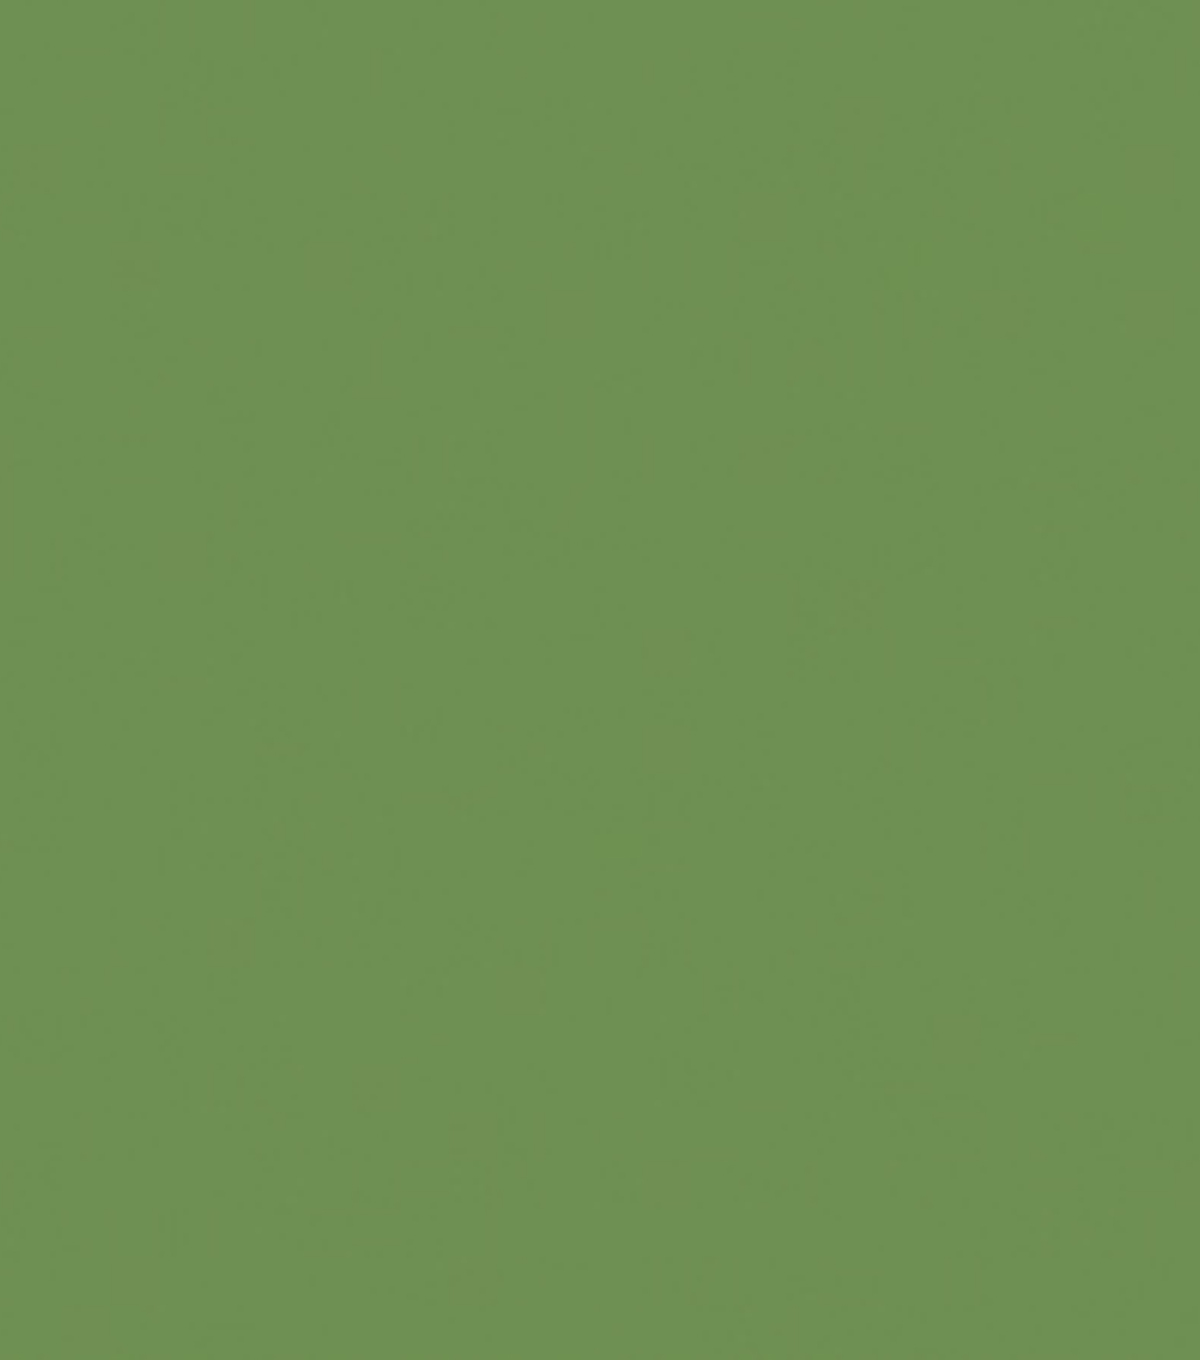 Delta Ceramcoat Acrylic Paint 2 oz, Light Foliage Green